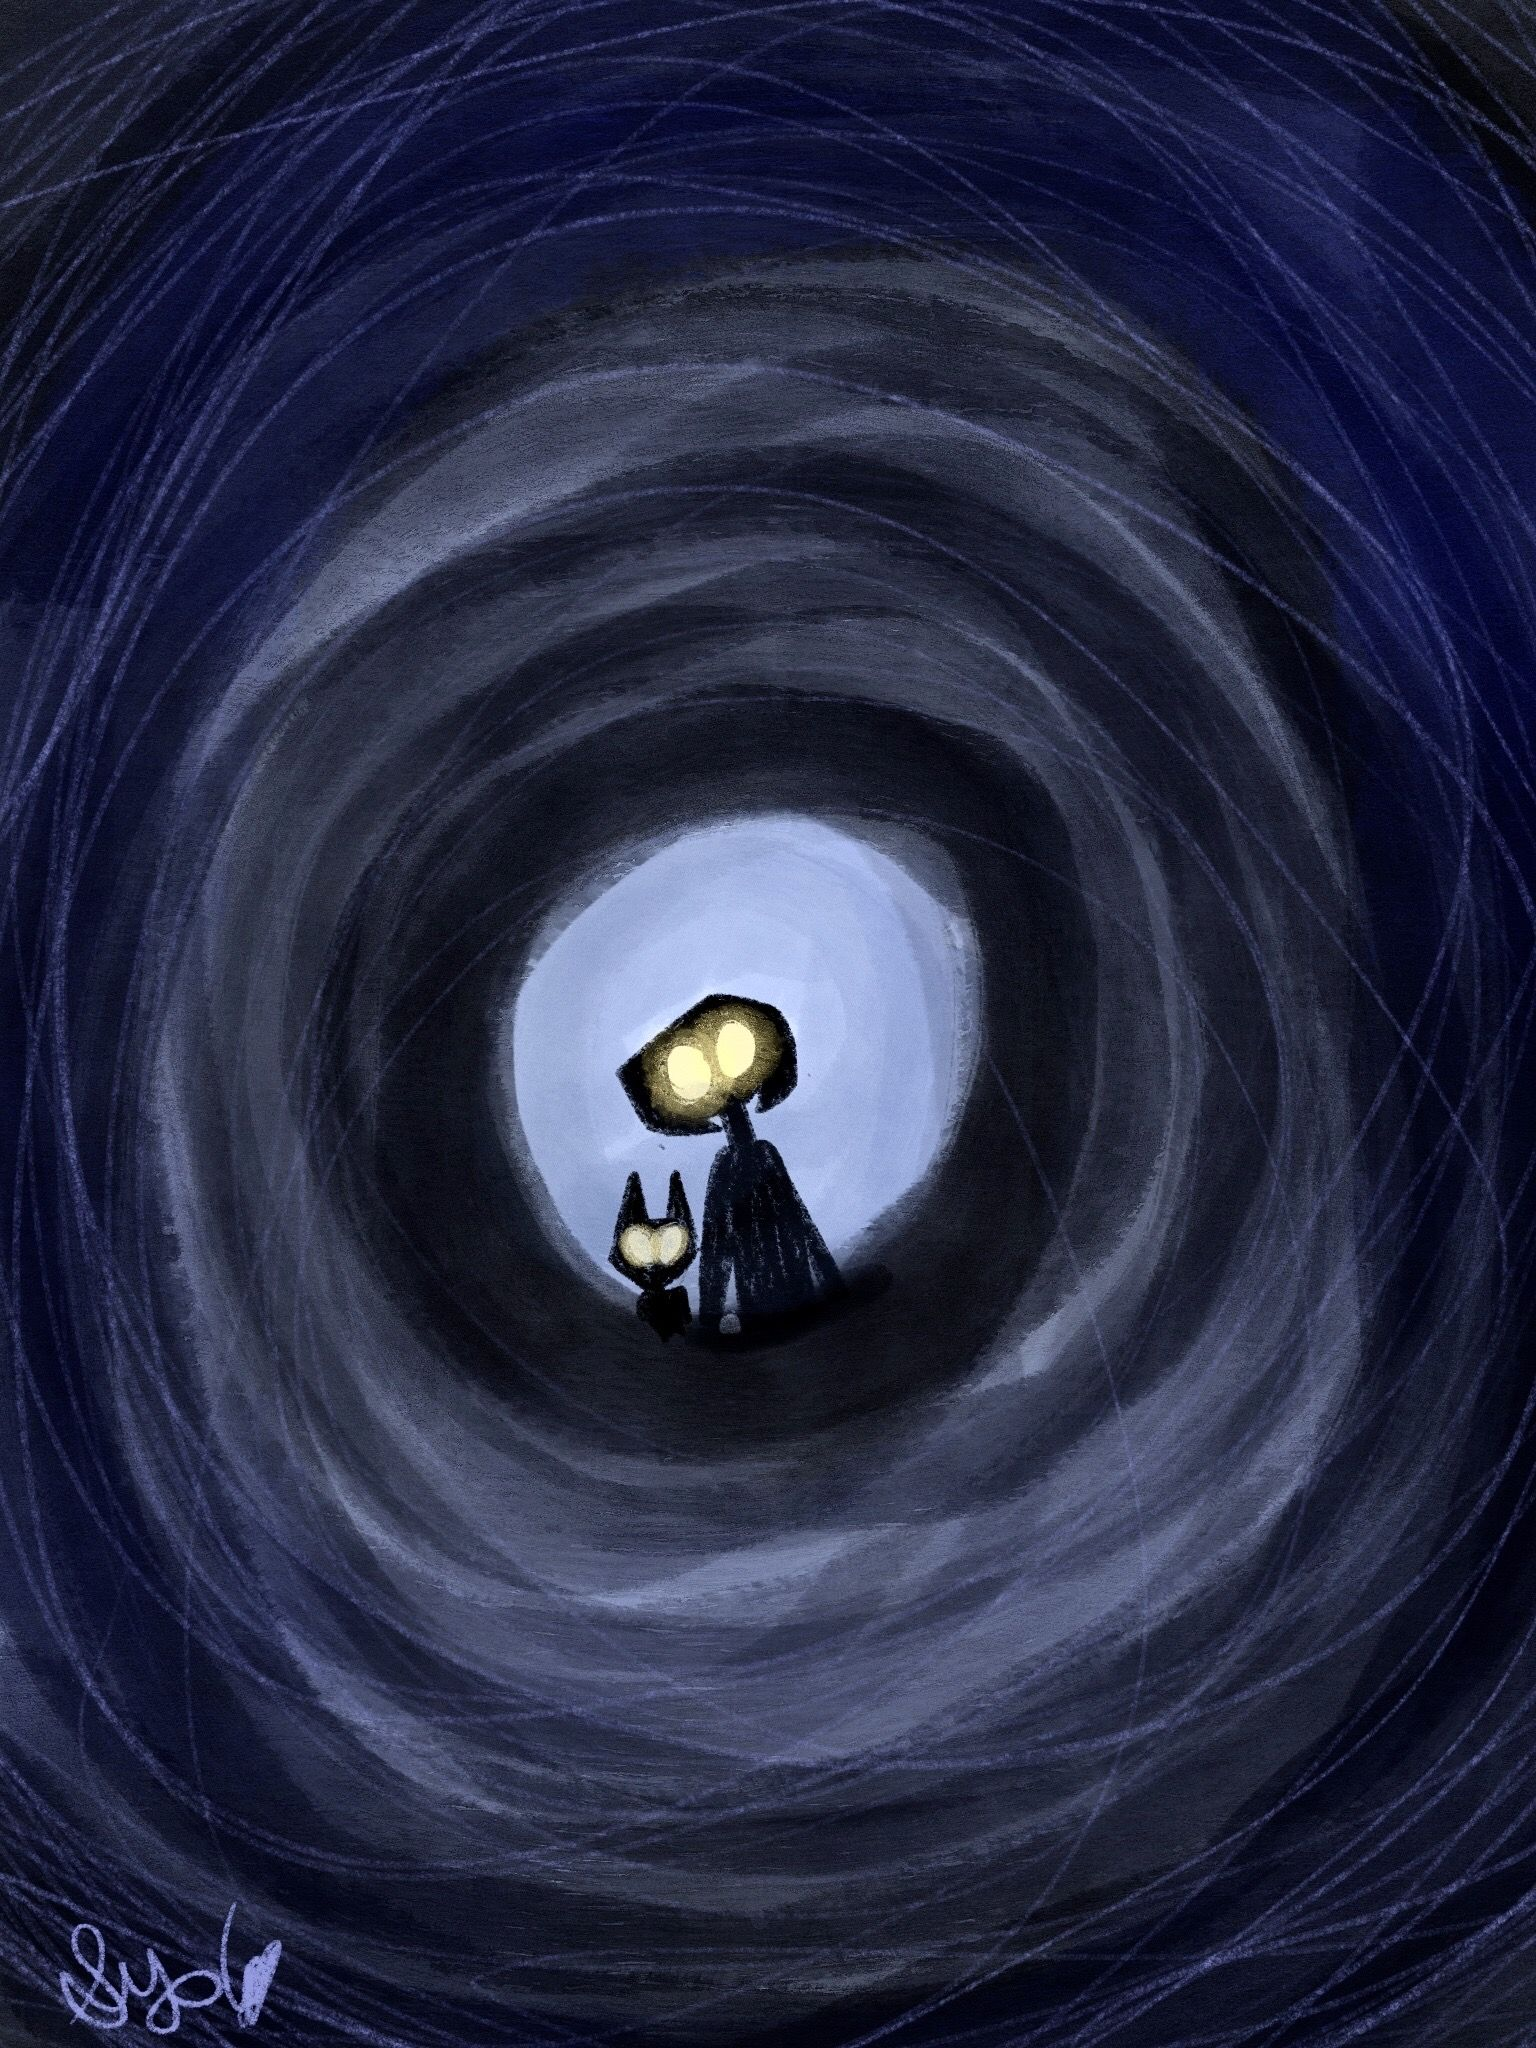 Through The Tunnel In 2020 Coraline Animation Anime